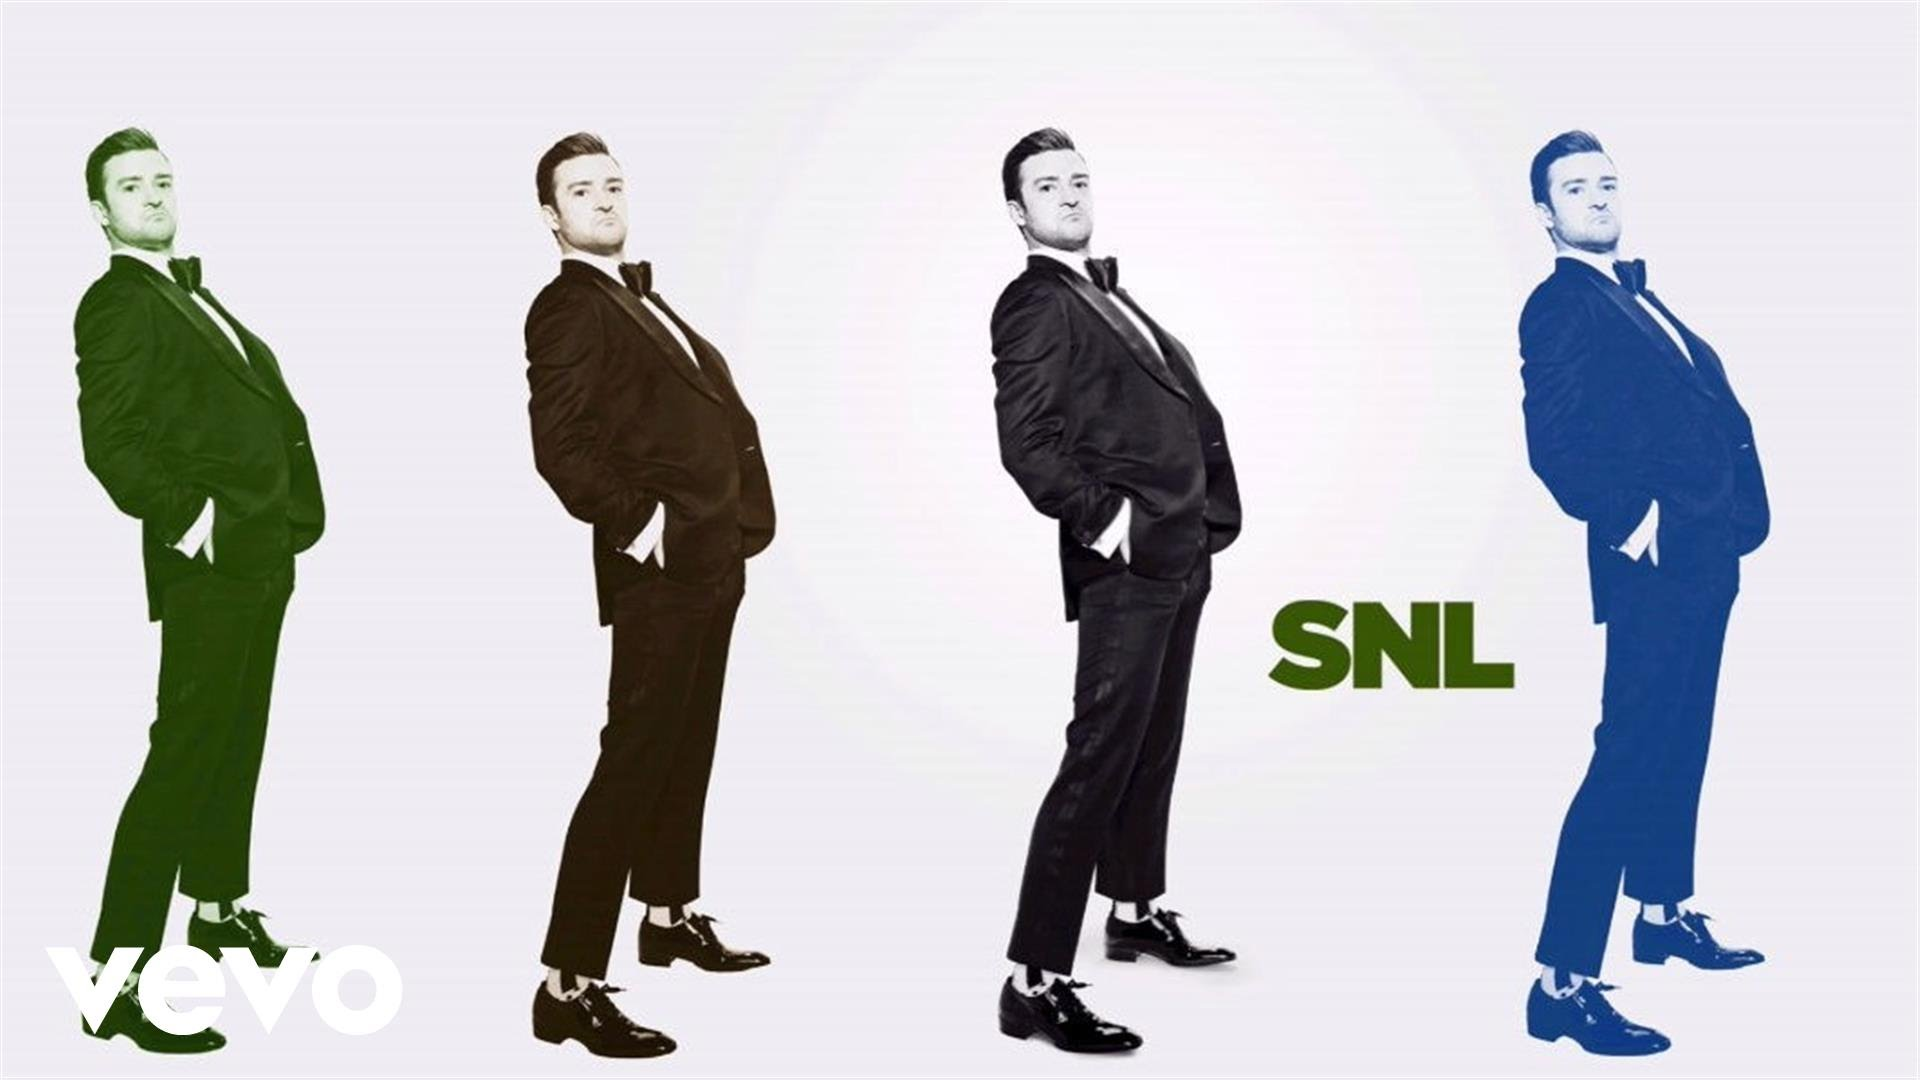 JAY-Z and Ryan Gosling to kick off Season 43 of 'SNL'